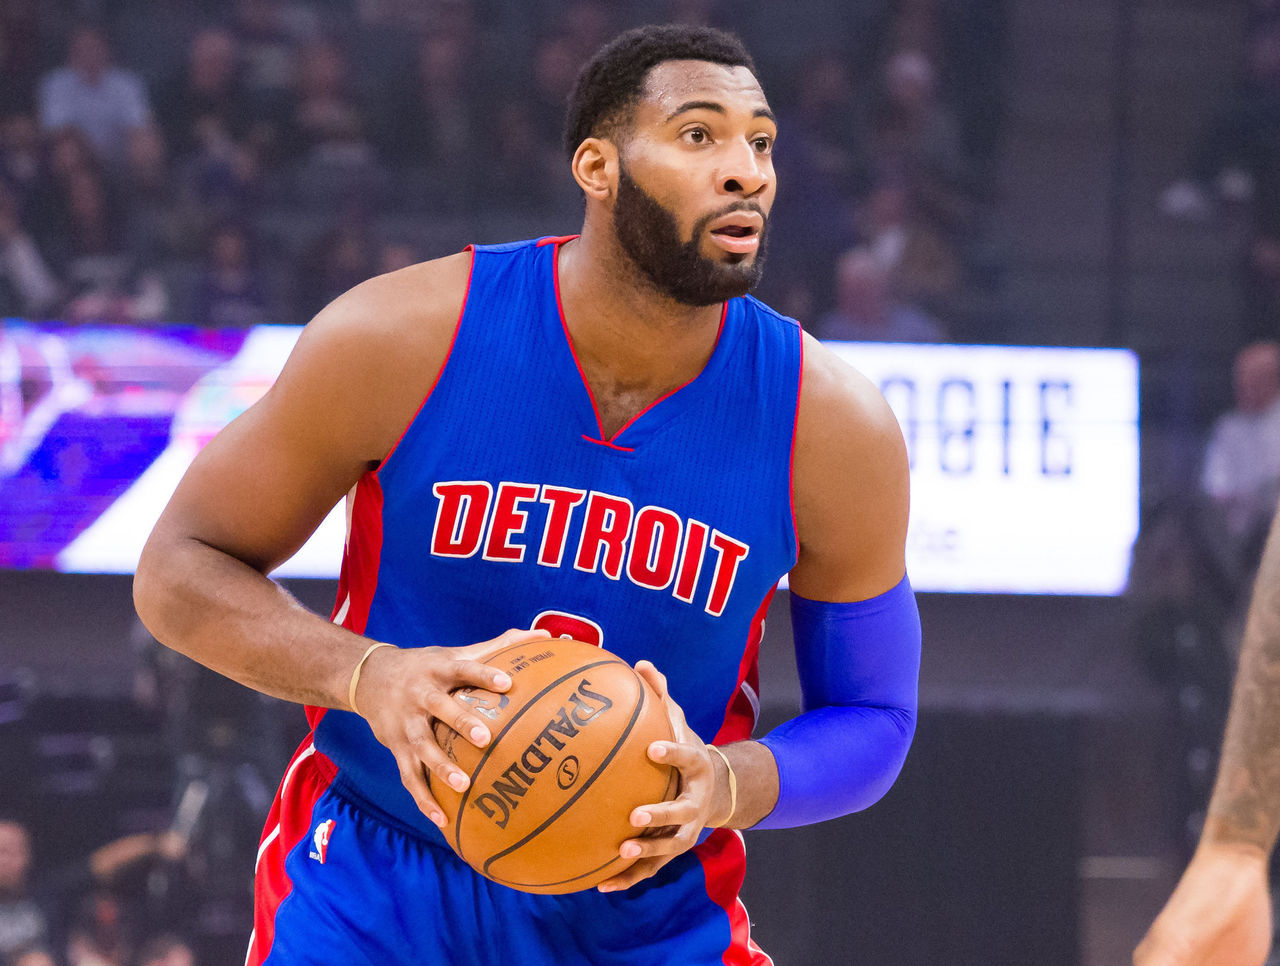 Cropped 2017 01 11t041717z 1802045111 nocid rtrmadp 3 nba detroit pistons at sacramento kings